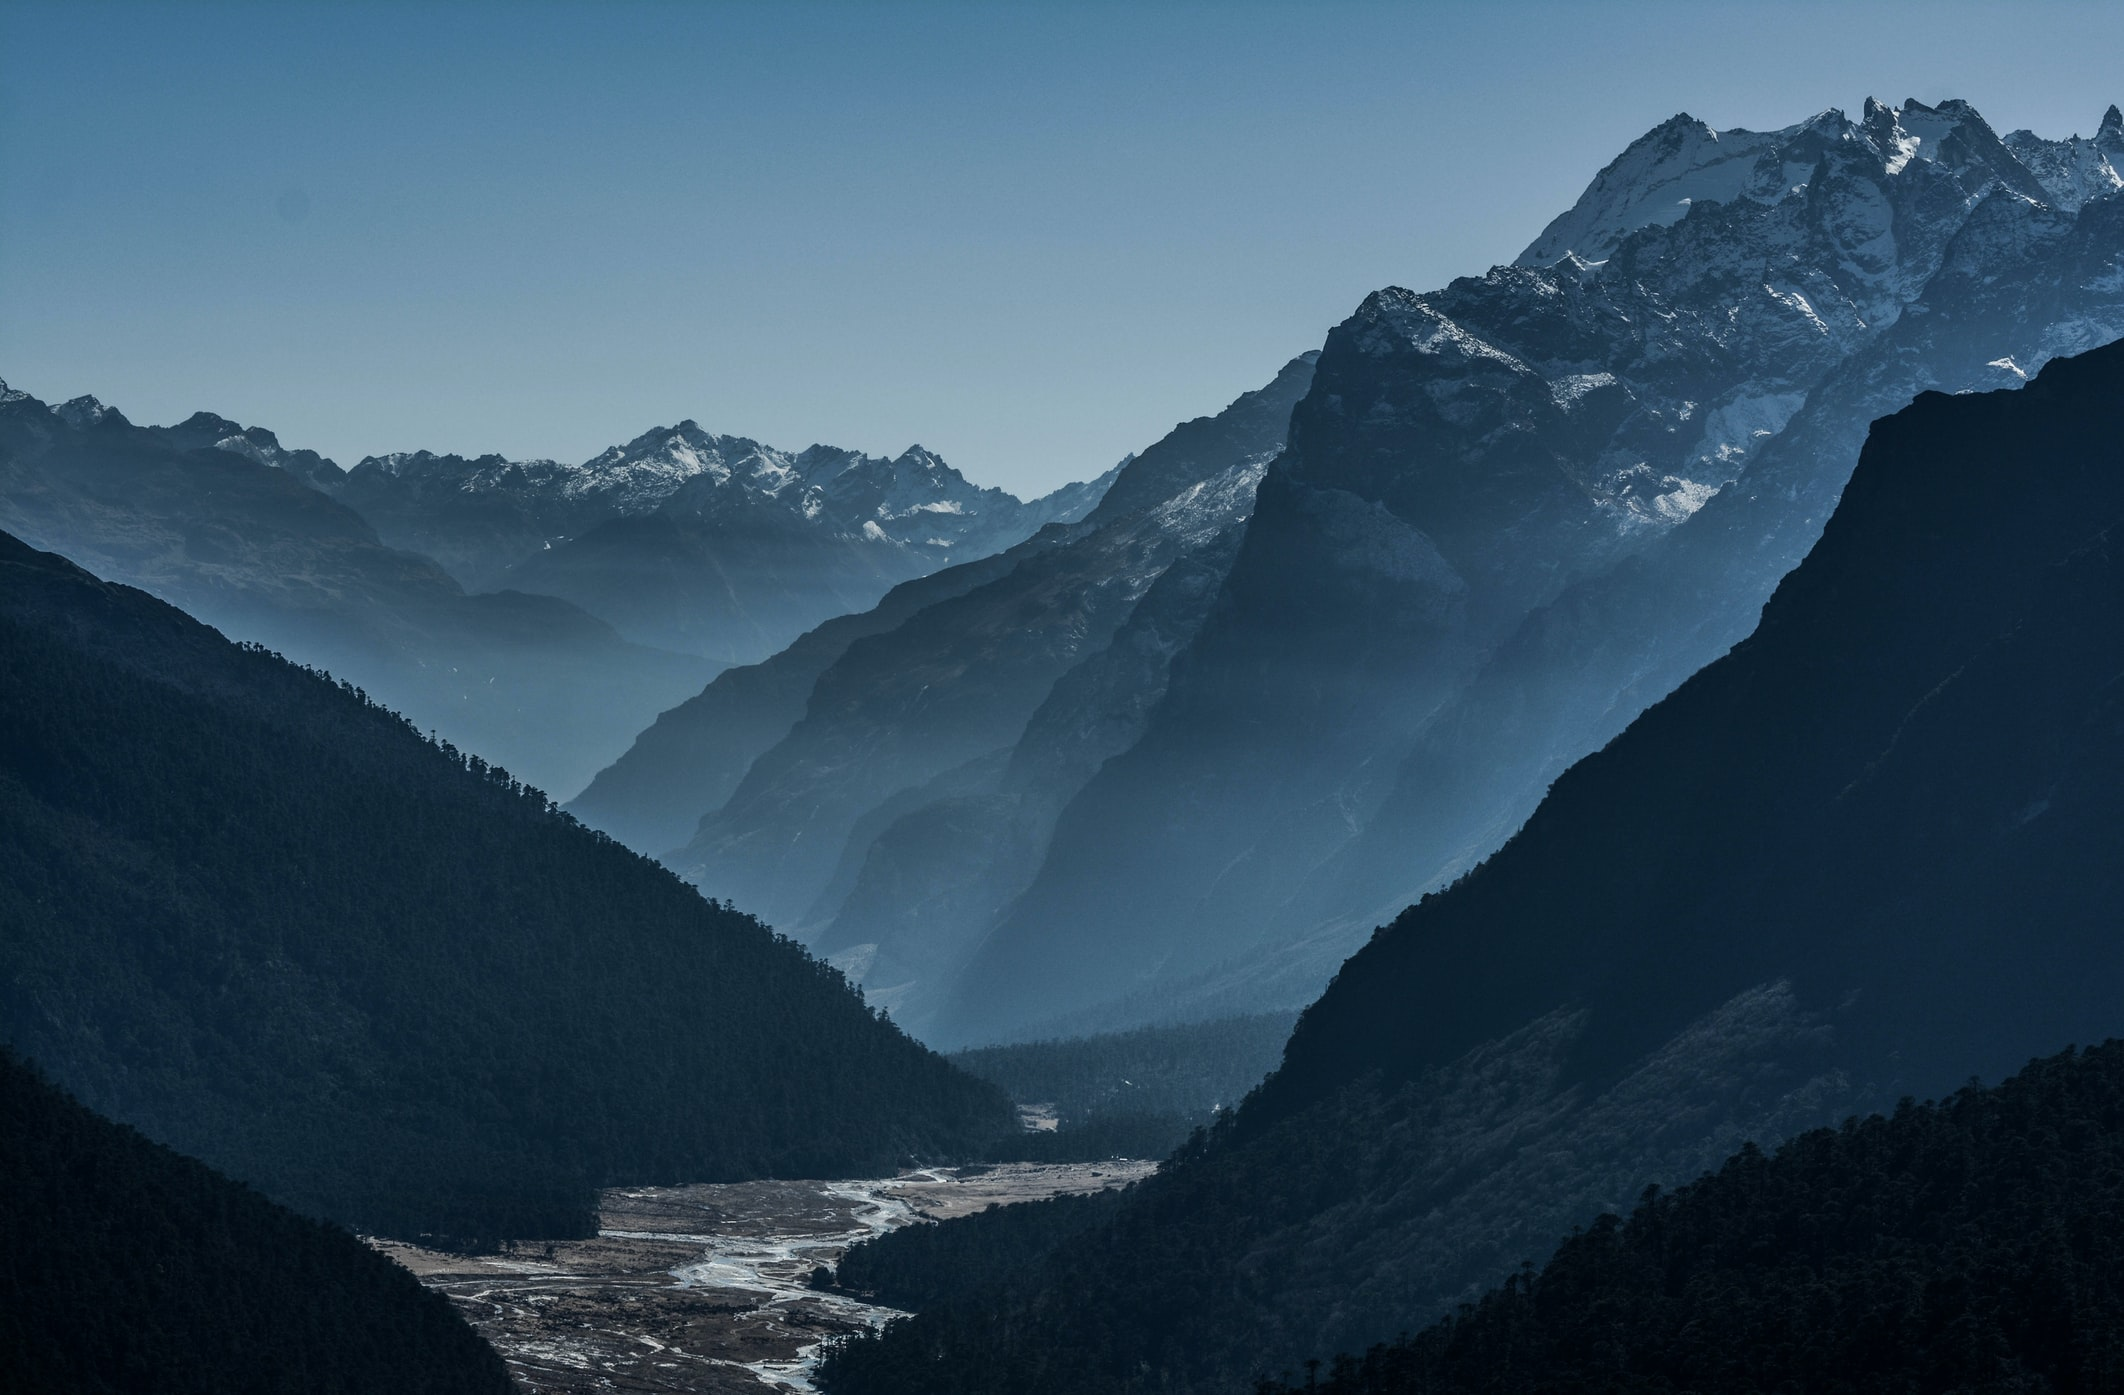 The mountains of Sikkim, one of the seven sister states